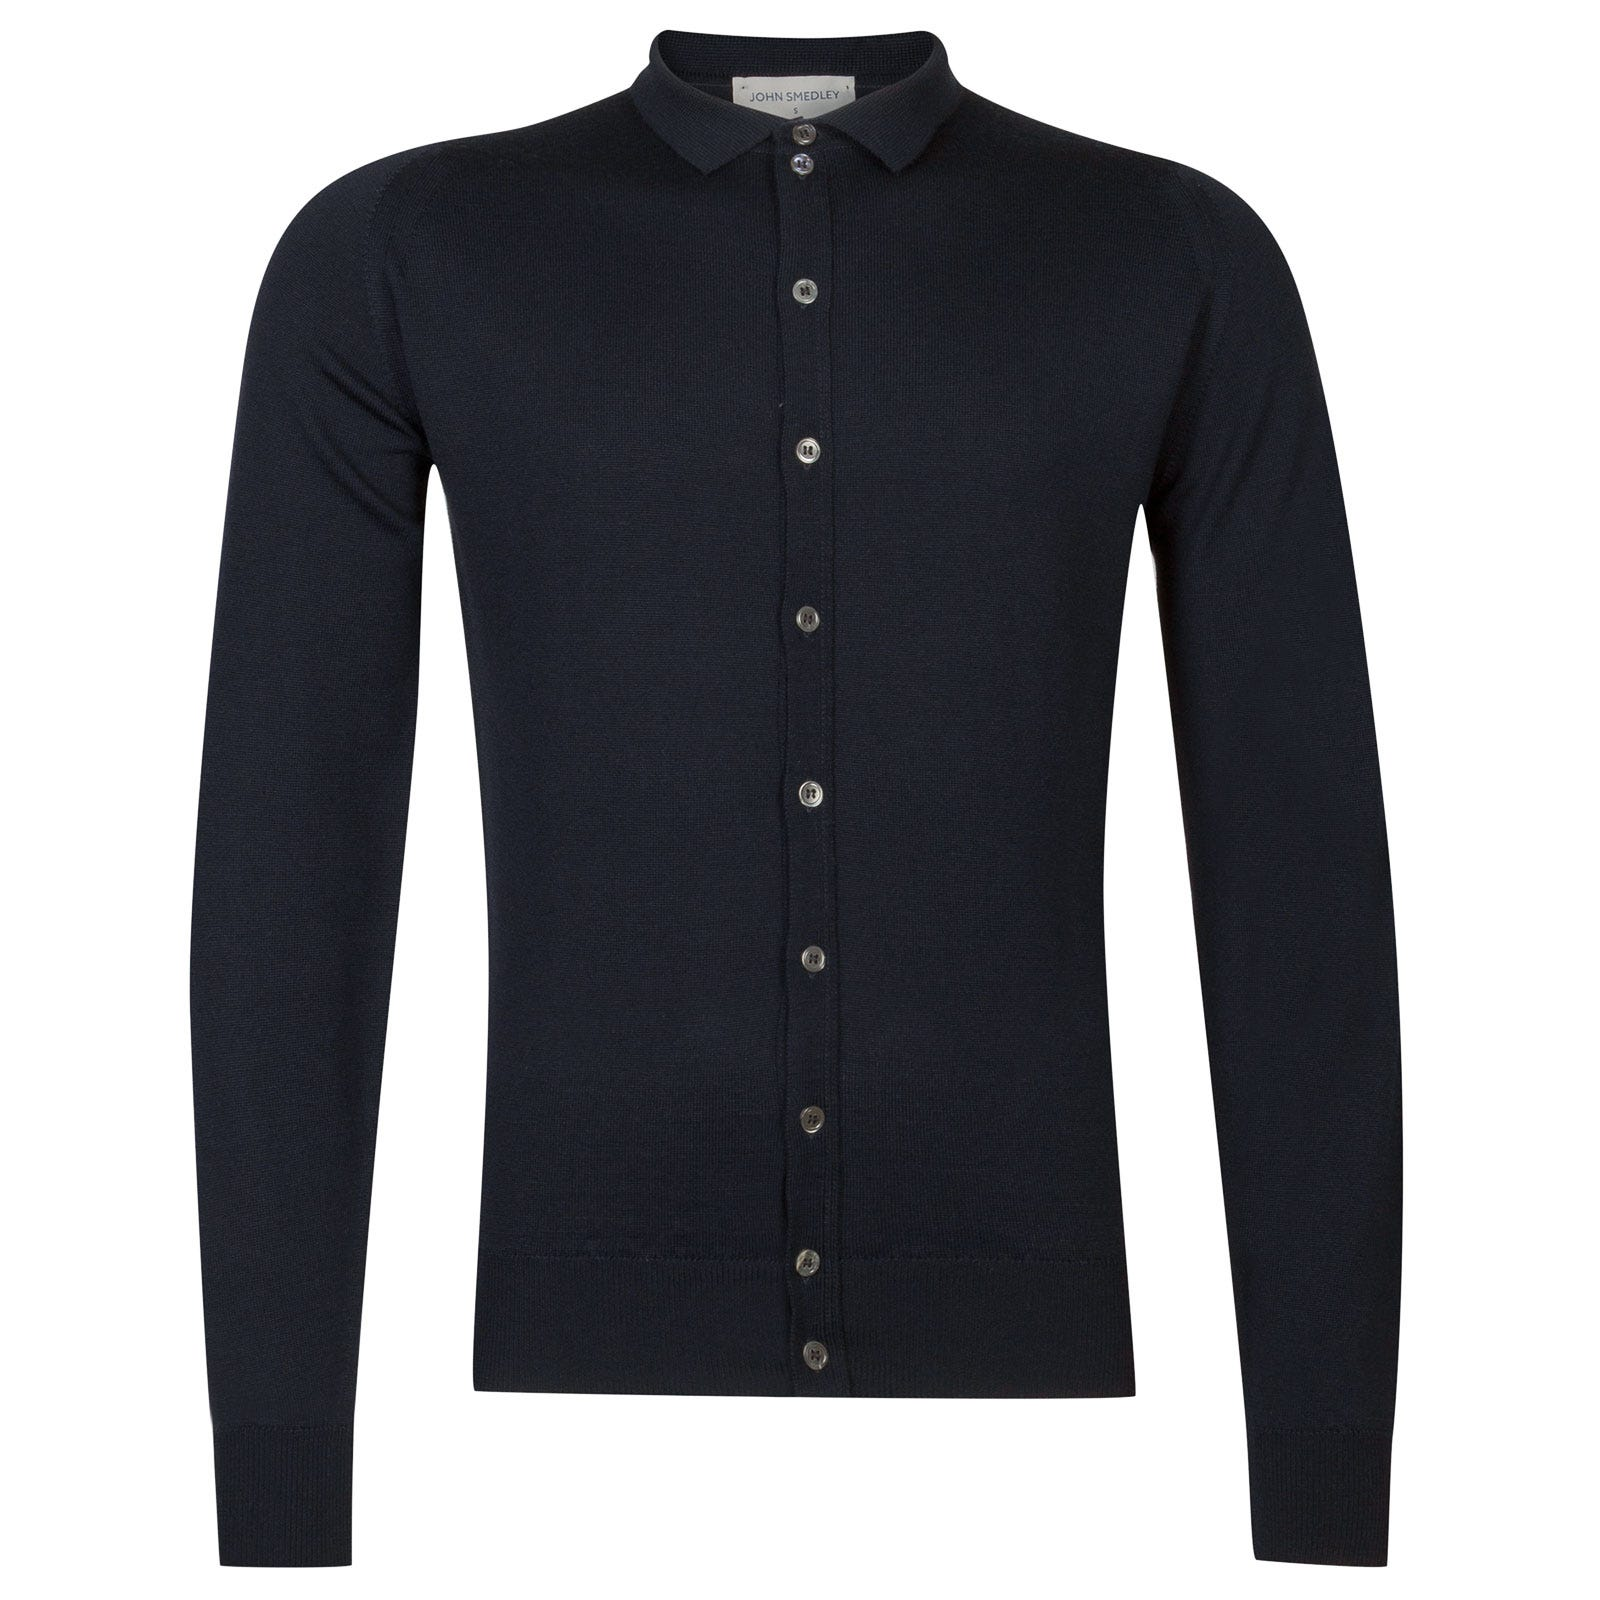 John Smedley parwish Merino Wool Shirt in Midnight-L